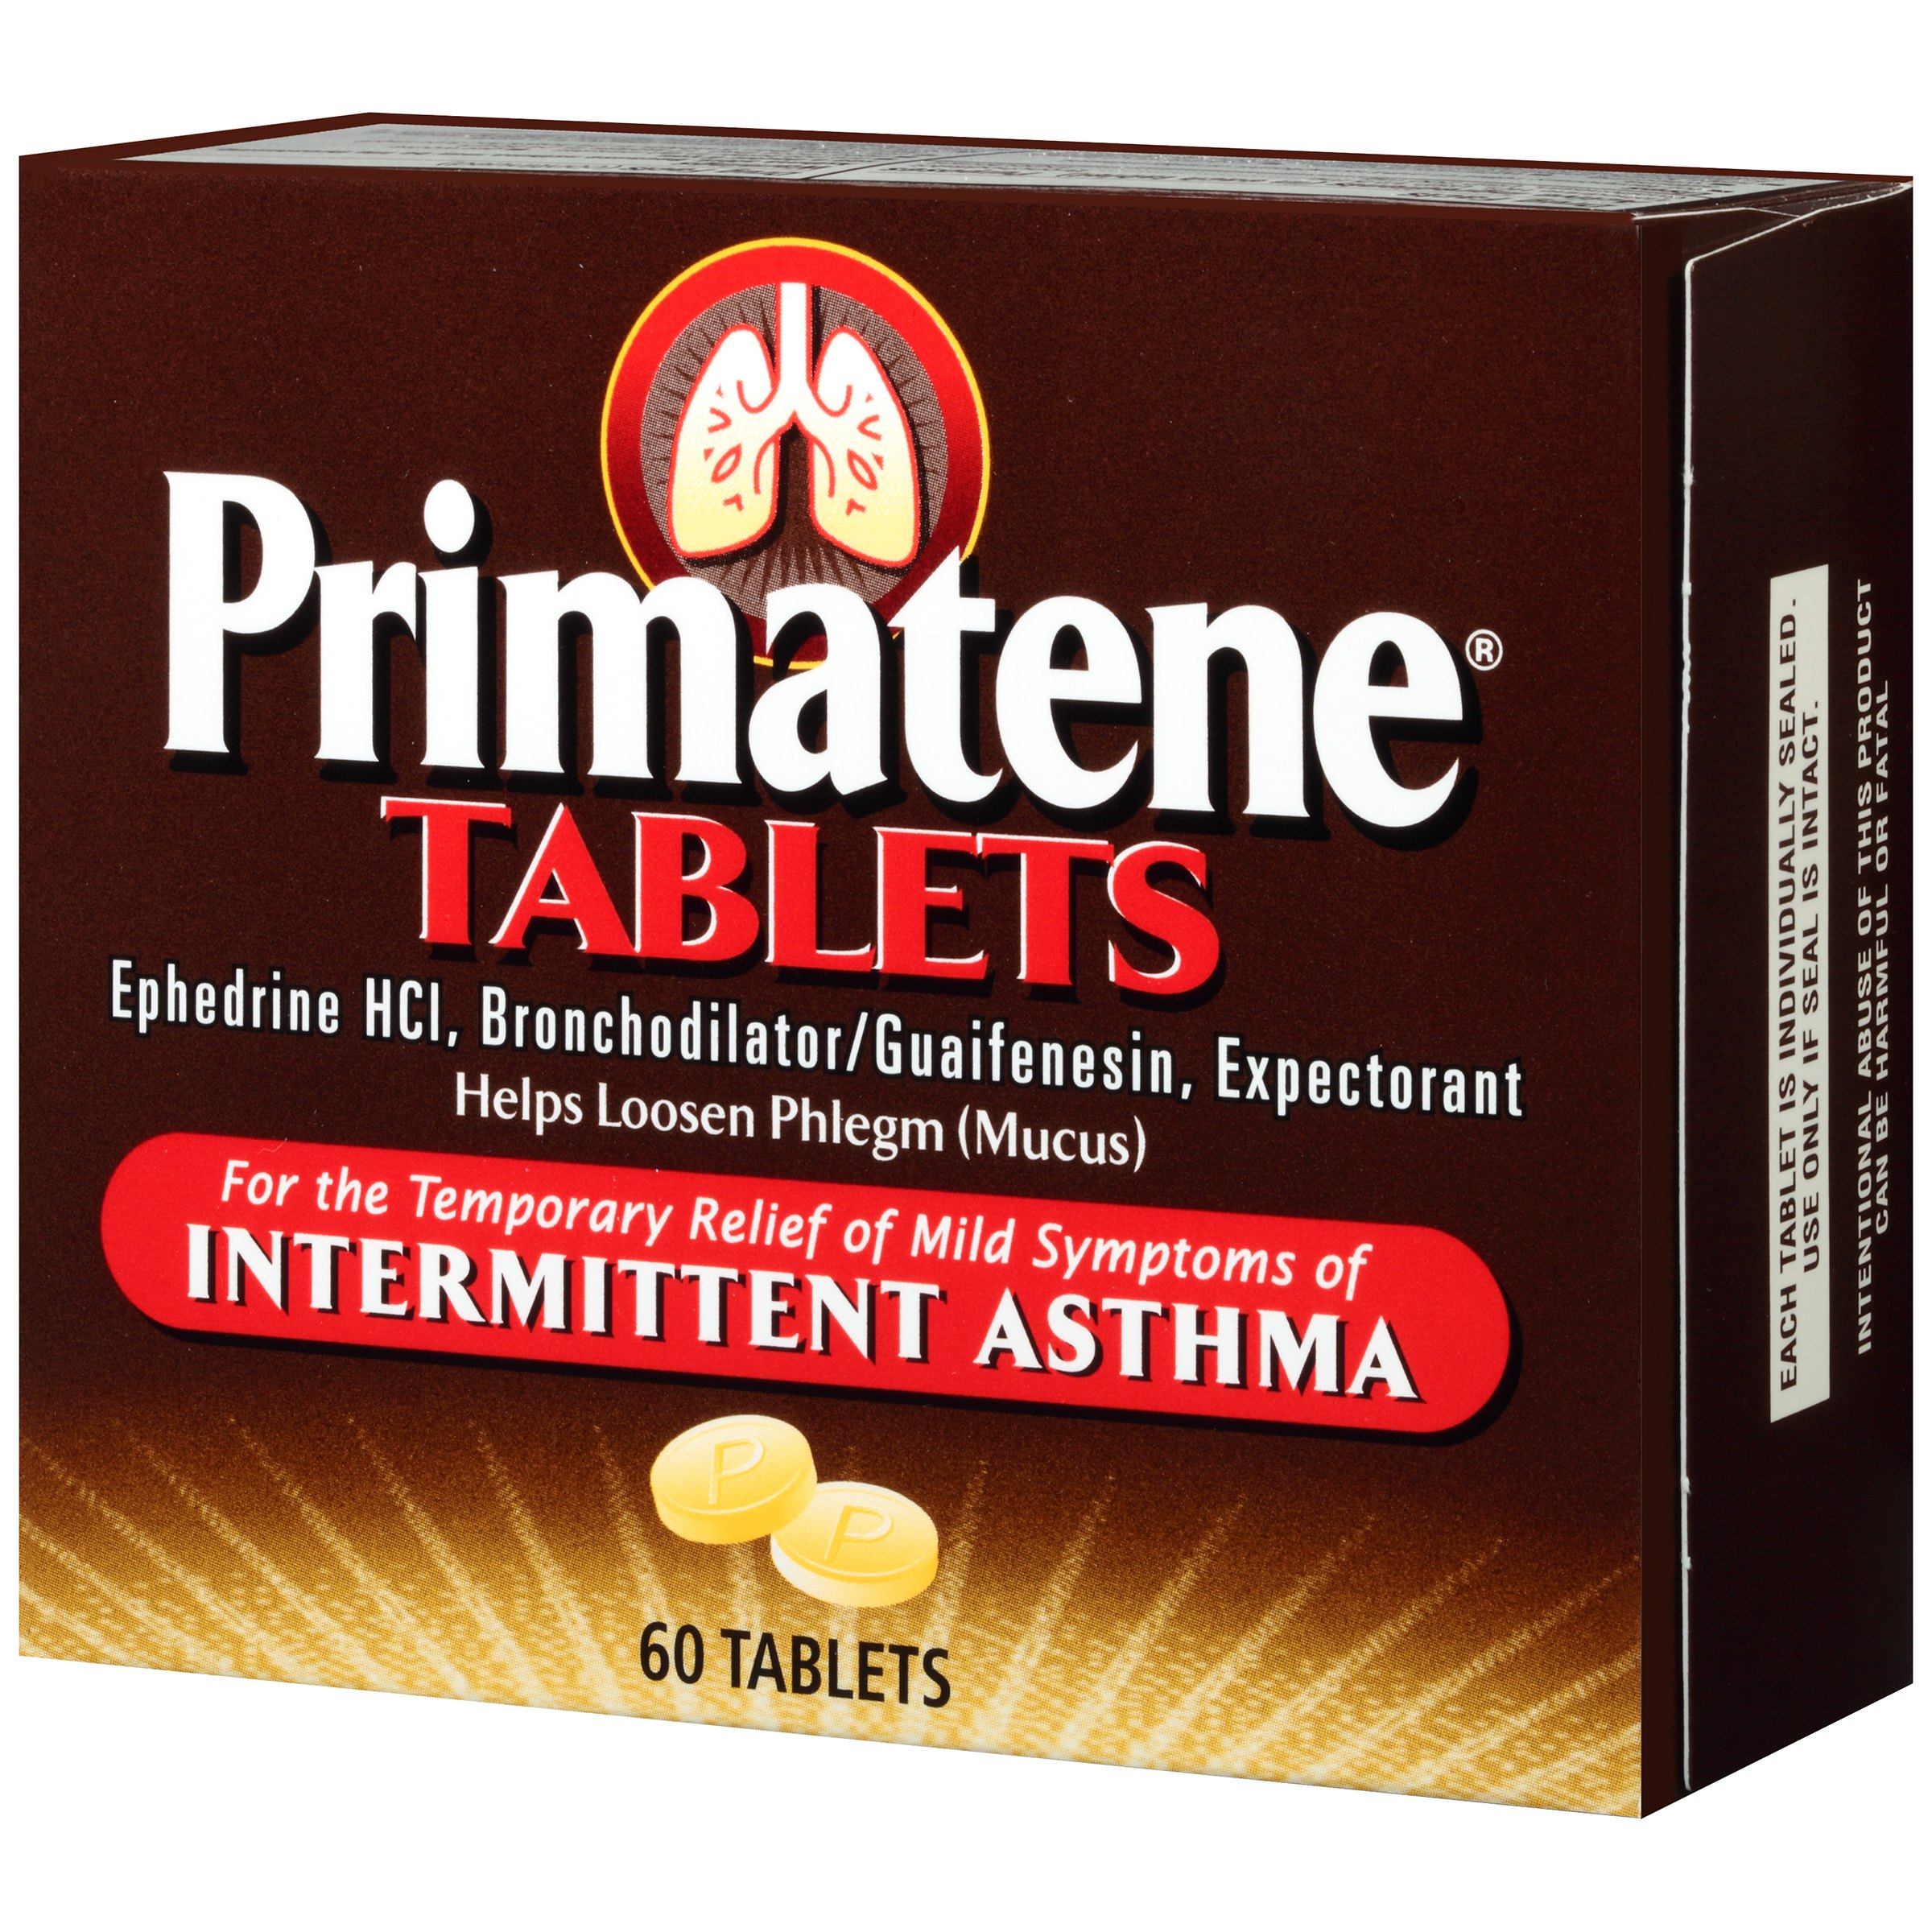 Primatene Tablets Weight Loss Side Effects Blog Dandk